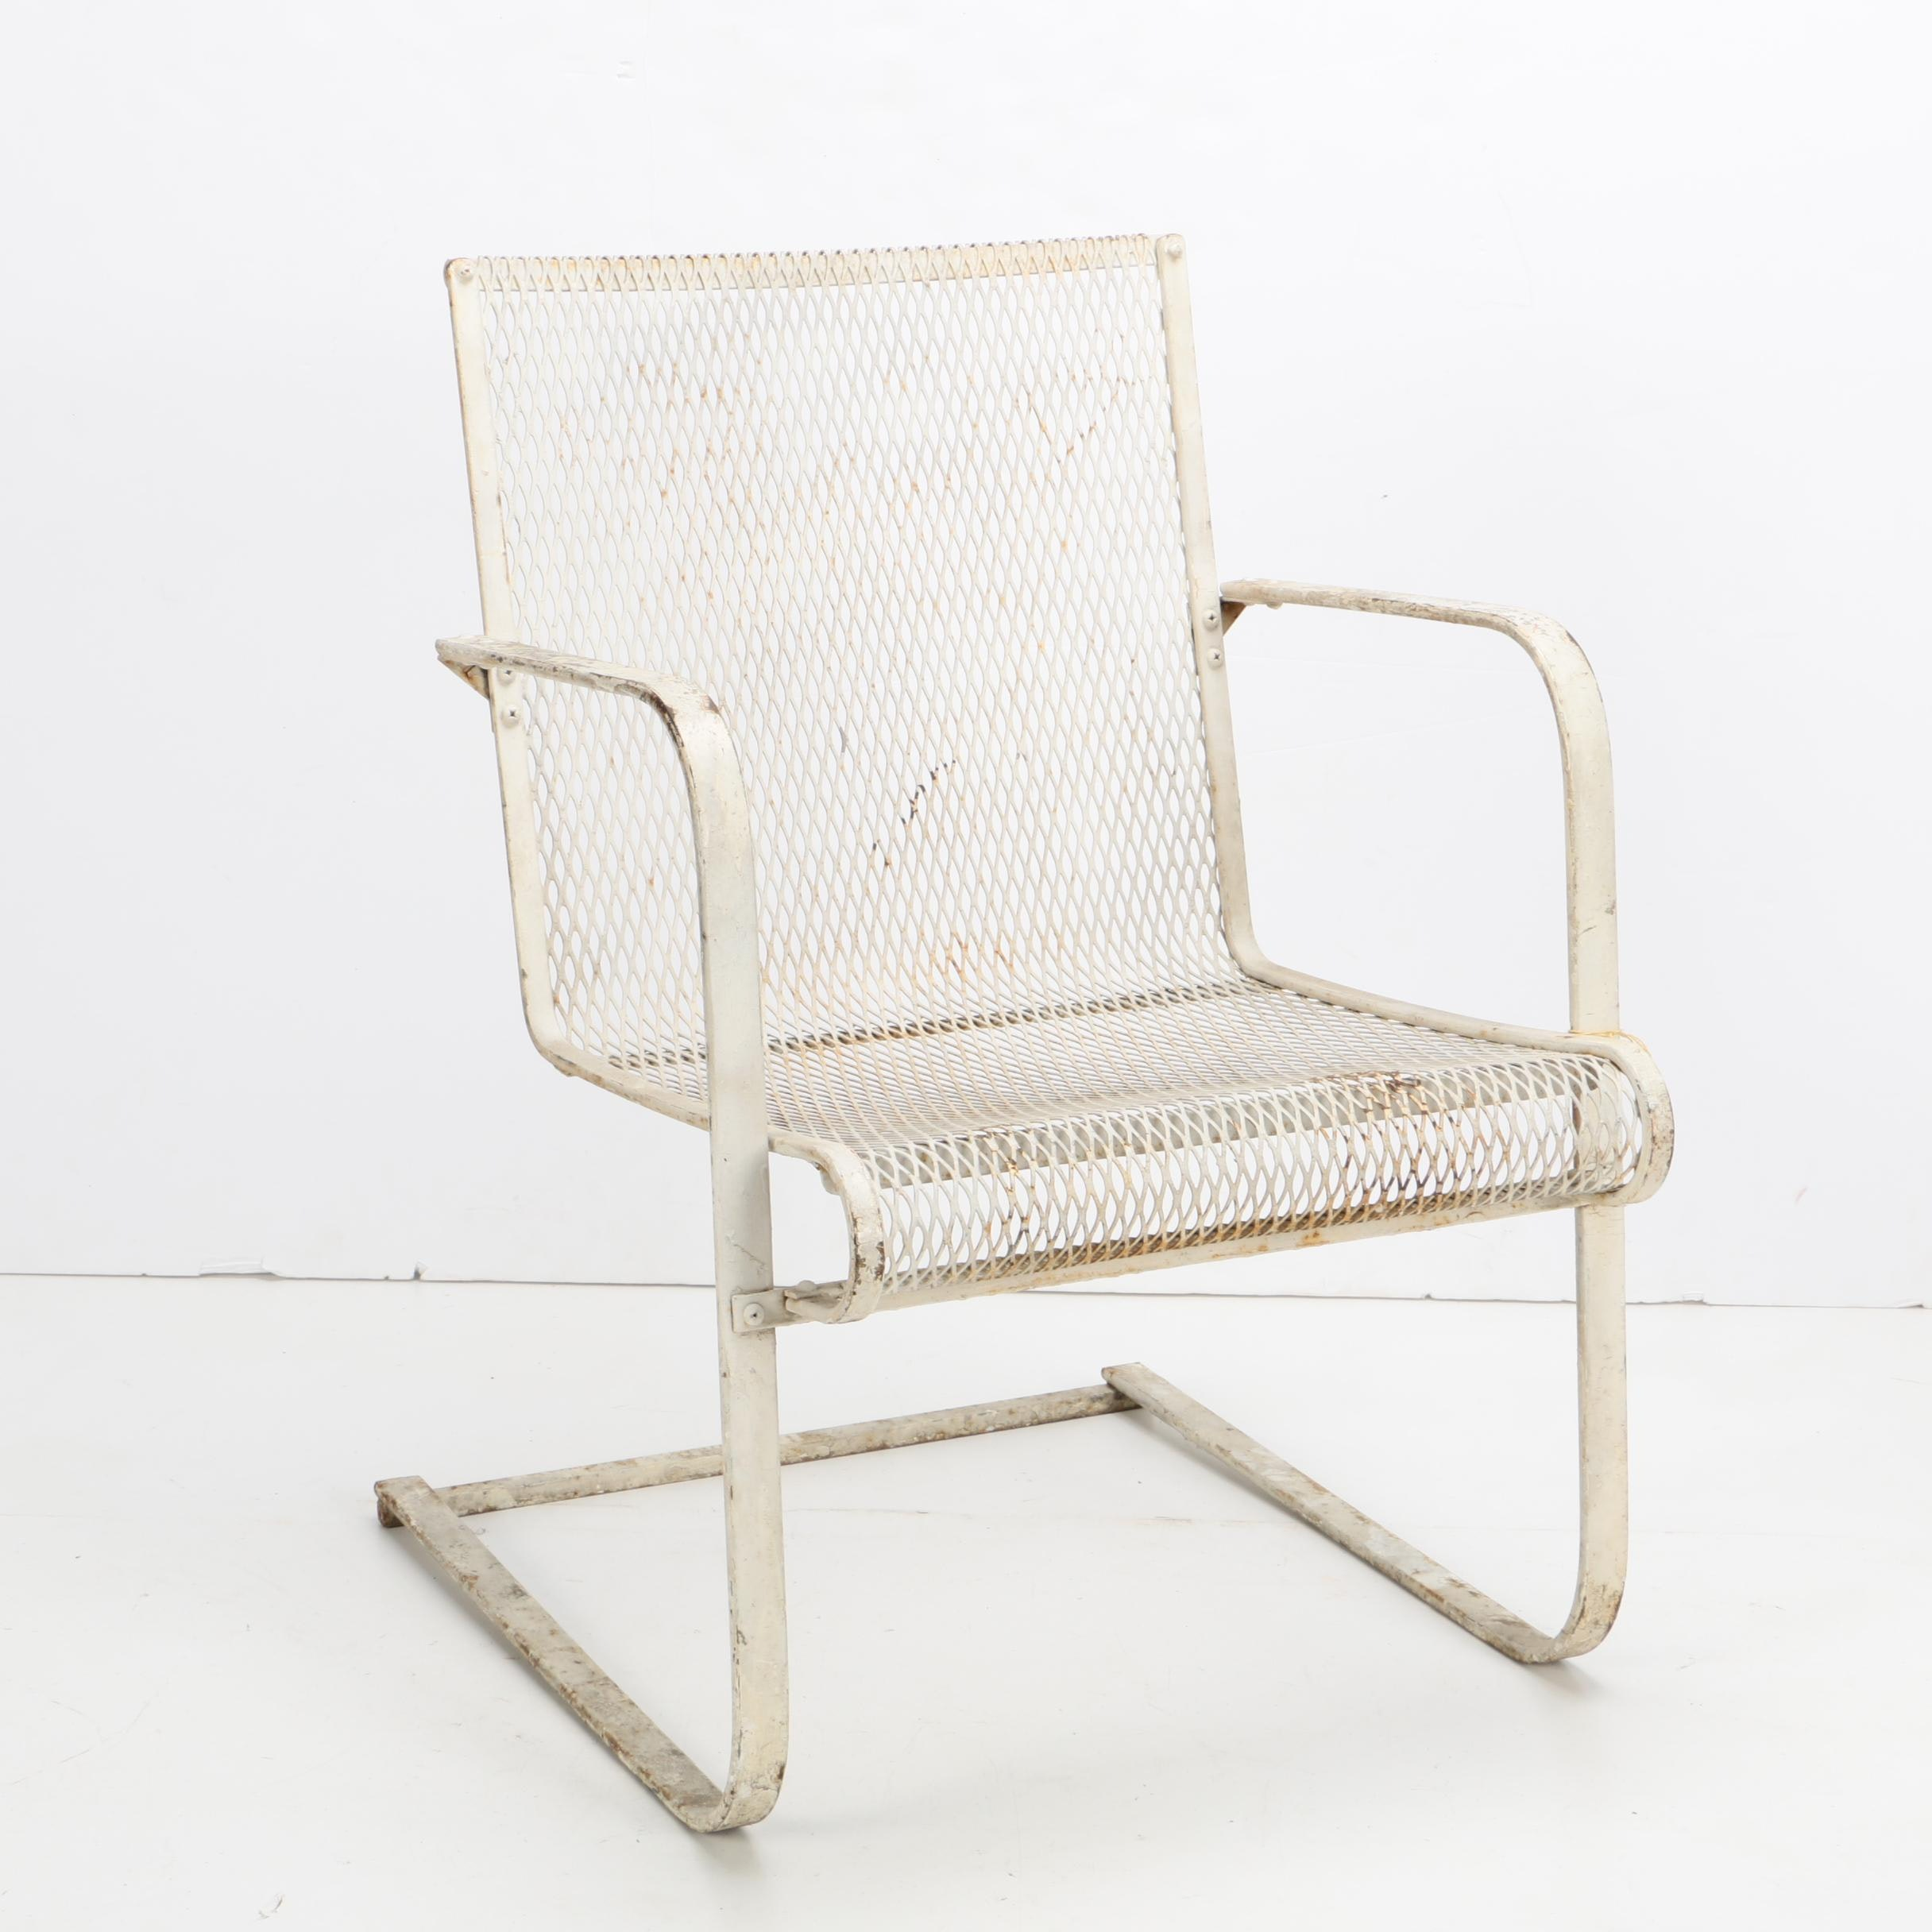 Vintage Steel Spring Patio Chair